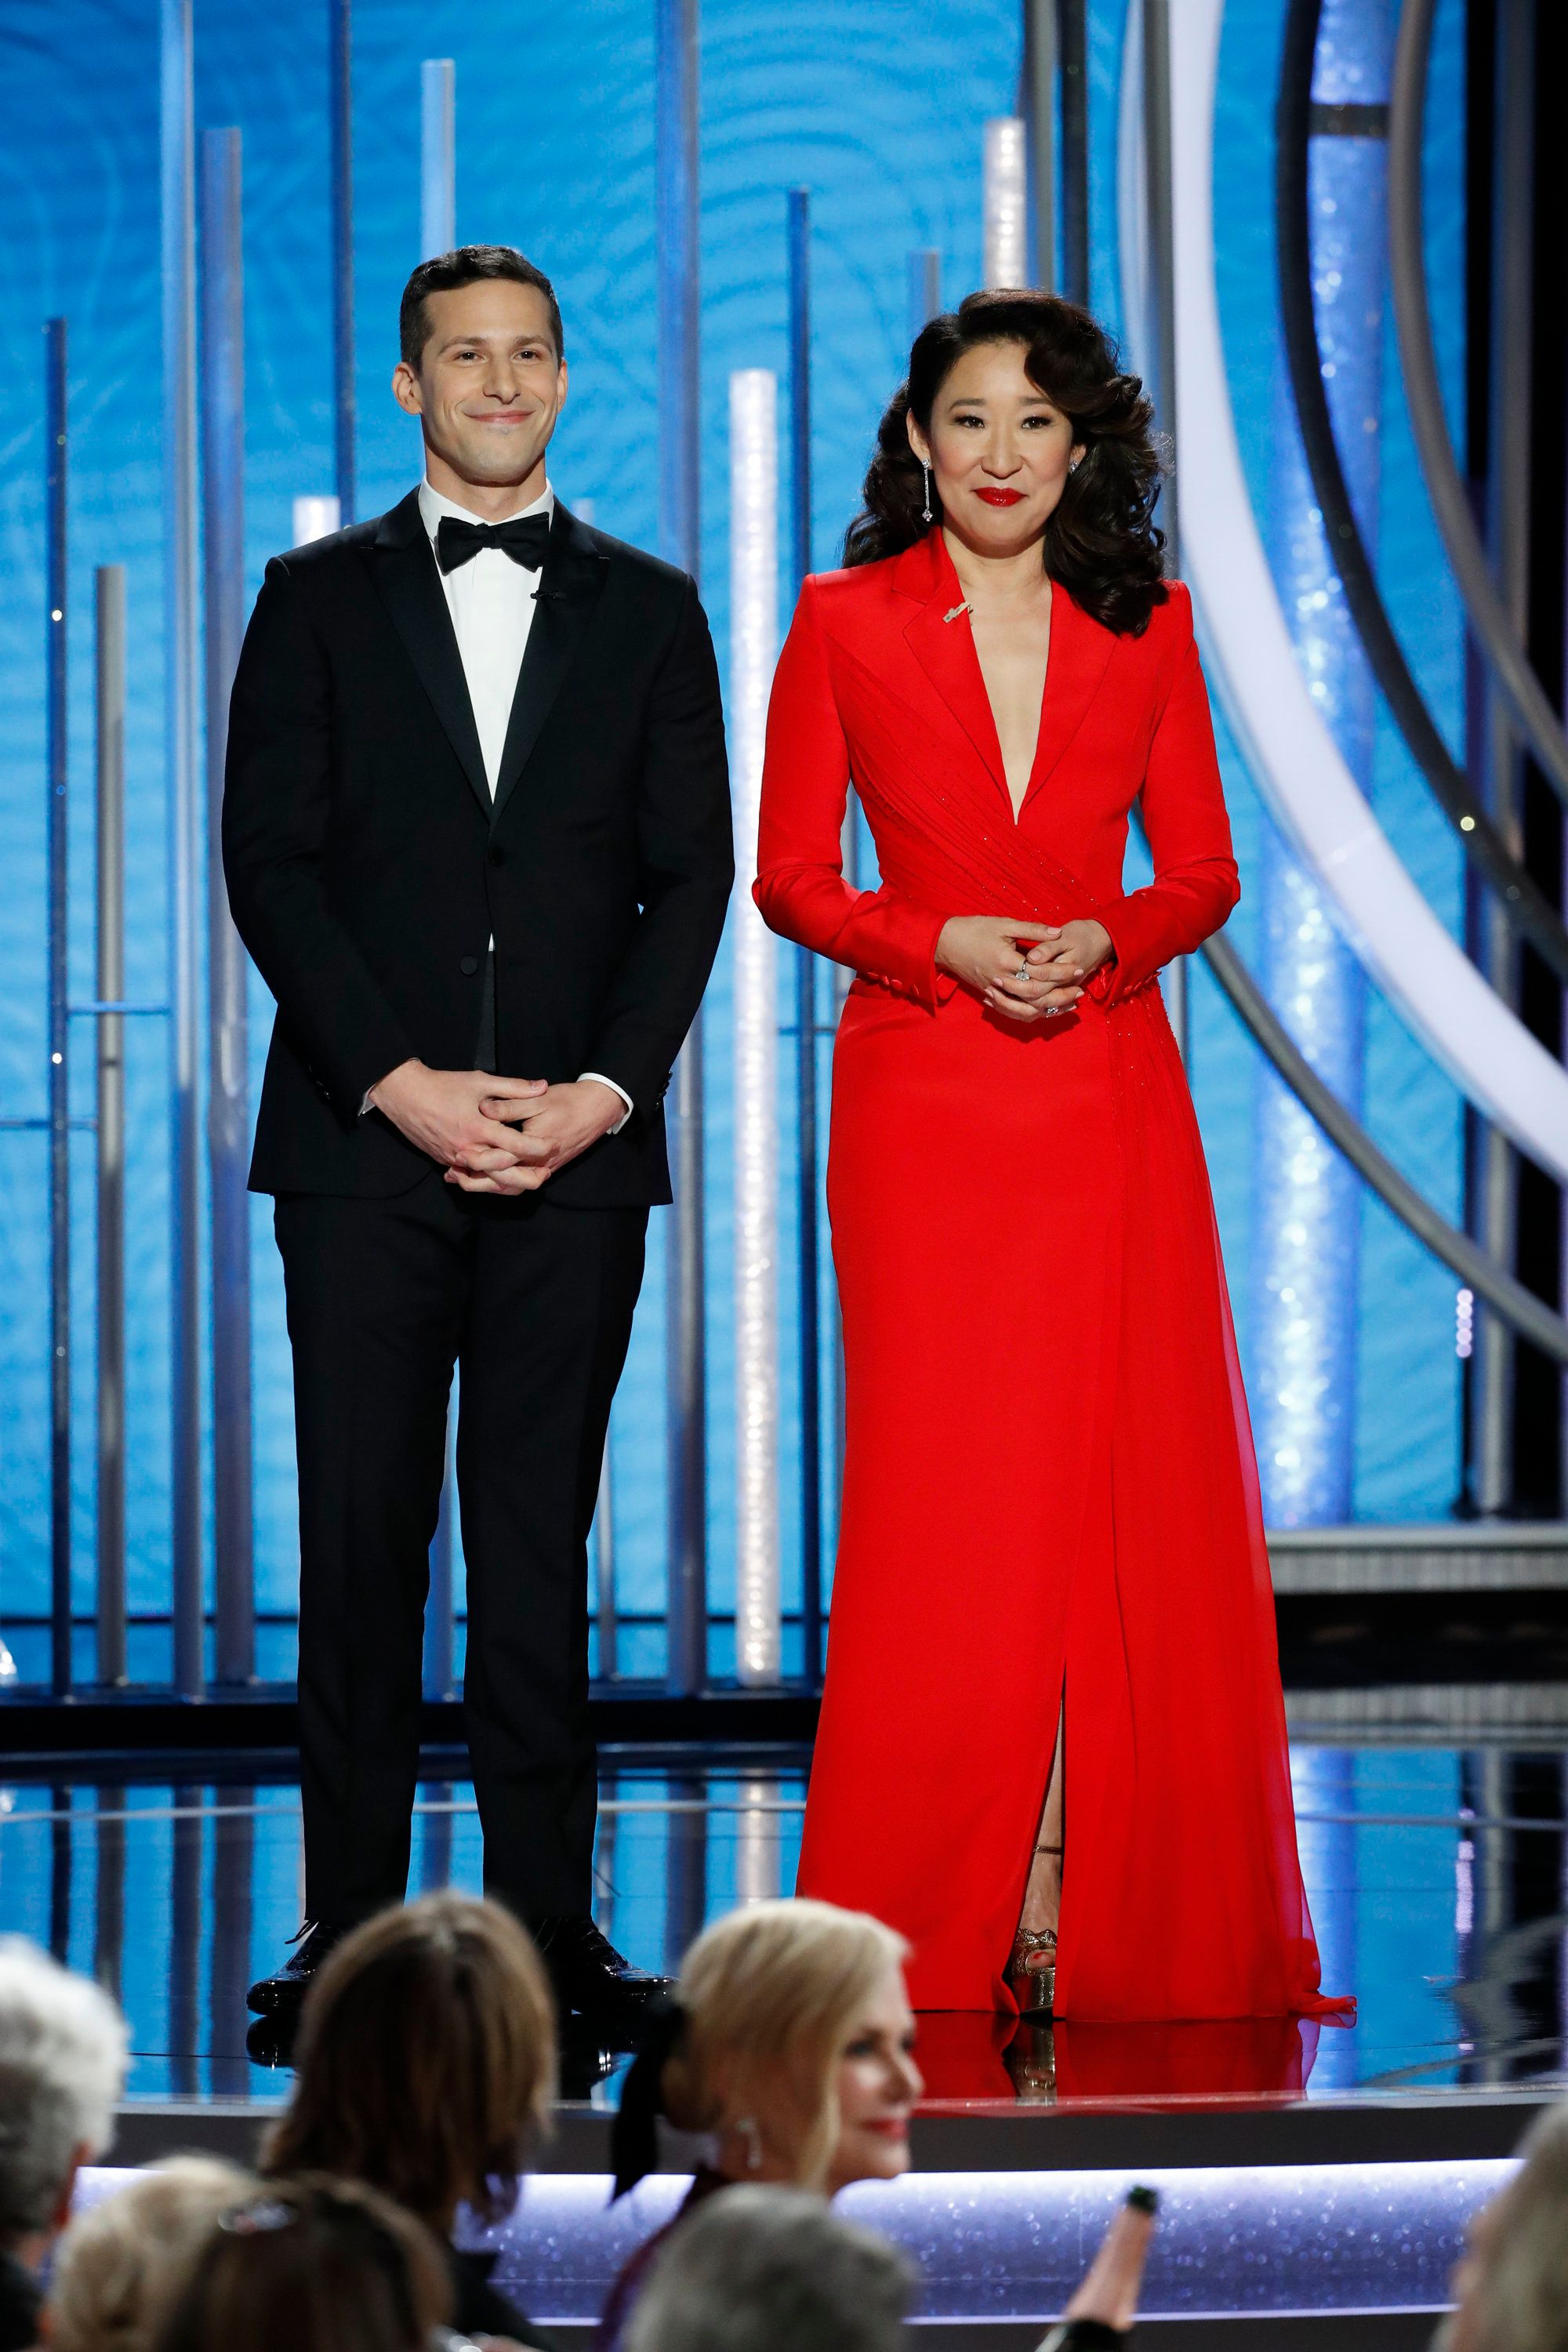 BEVERLY HILLS, CALIFORNIA - JANUARY 06: In this handout photo provided by NBCUniversal, Hosts Andy Samberg and Sandra Oh  speak onstage during the 76th Annual Golden Globe Awards at The Beverly Hilton Hotel on January 06, 2019 in Beverly Hills, California.  (Photo by Paul Drinkwater/NBCUniversal via Getty Images)